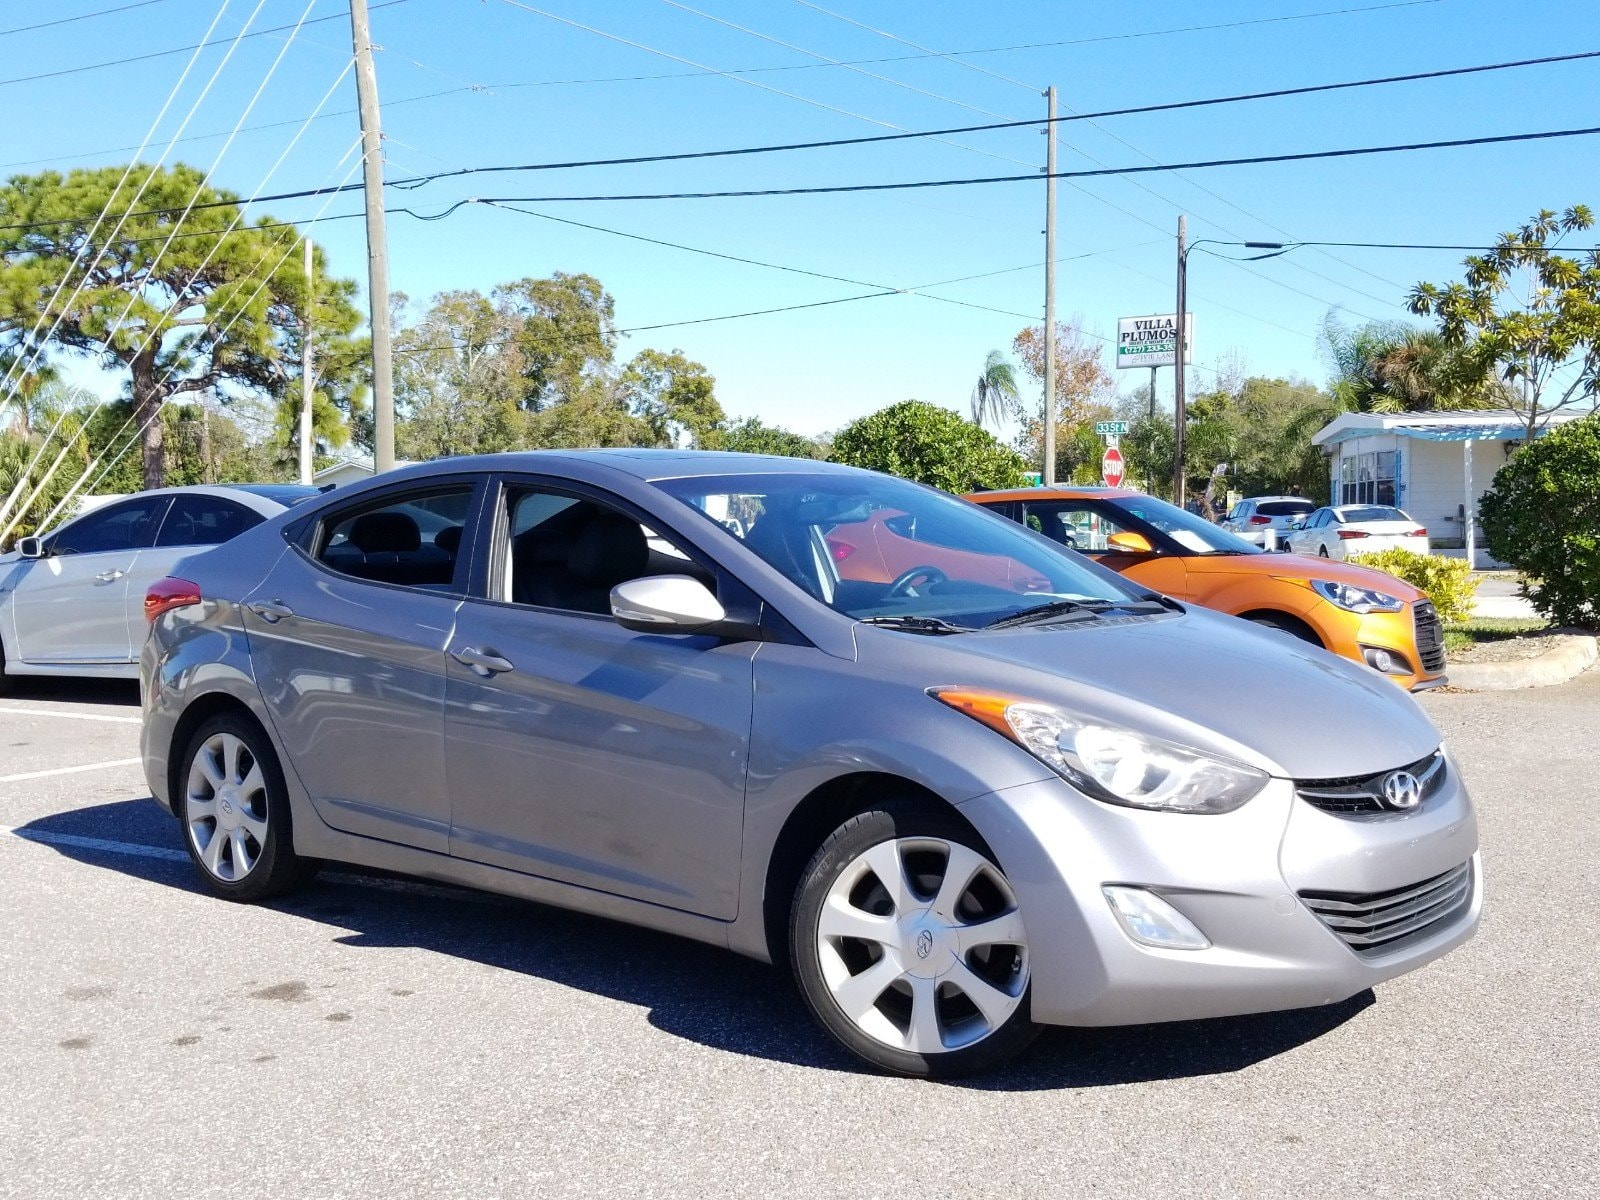 2011 Hyundai Elantra Ltd Sedan